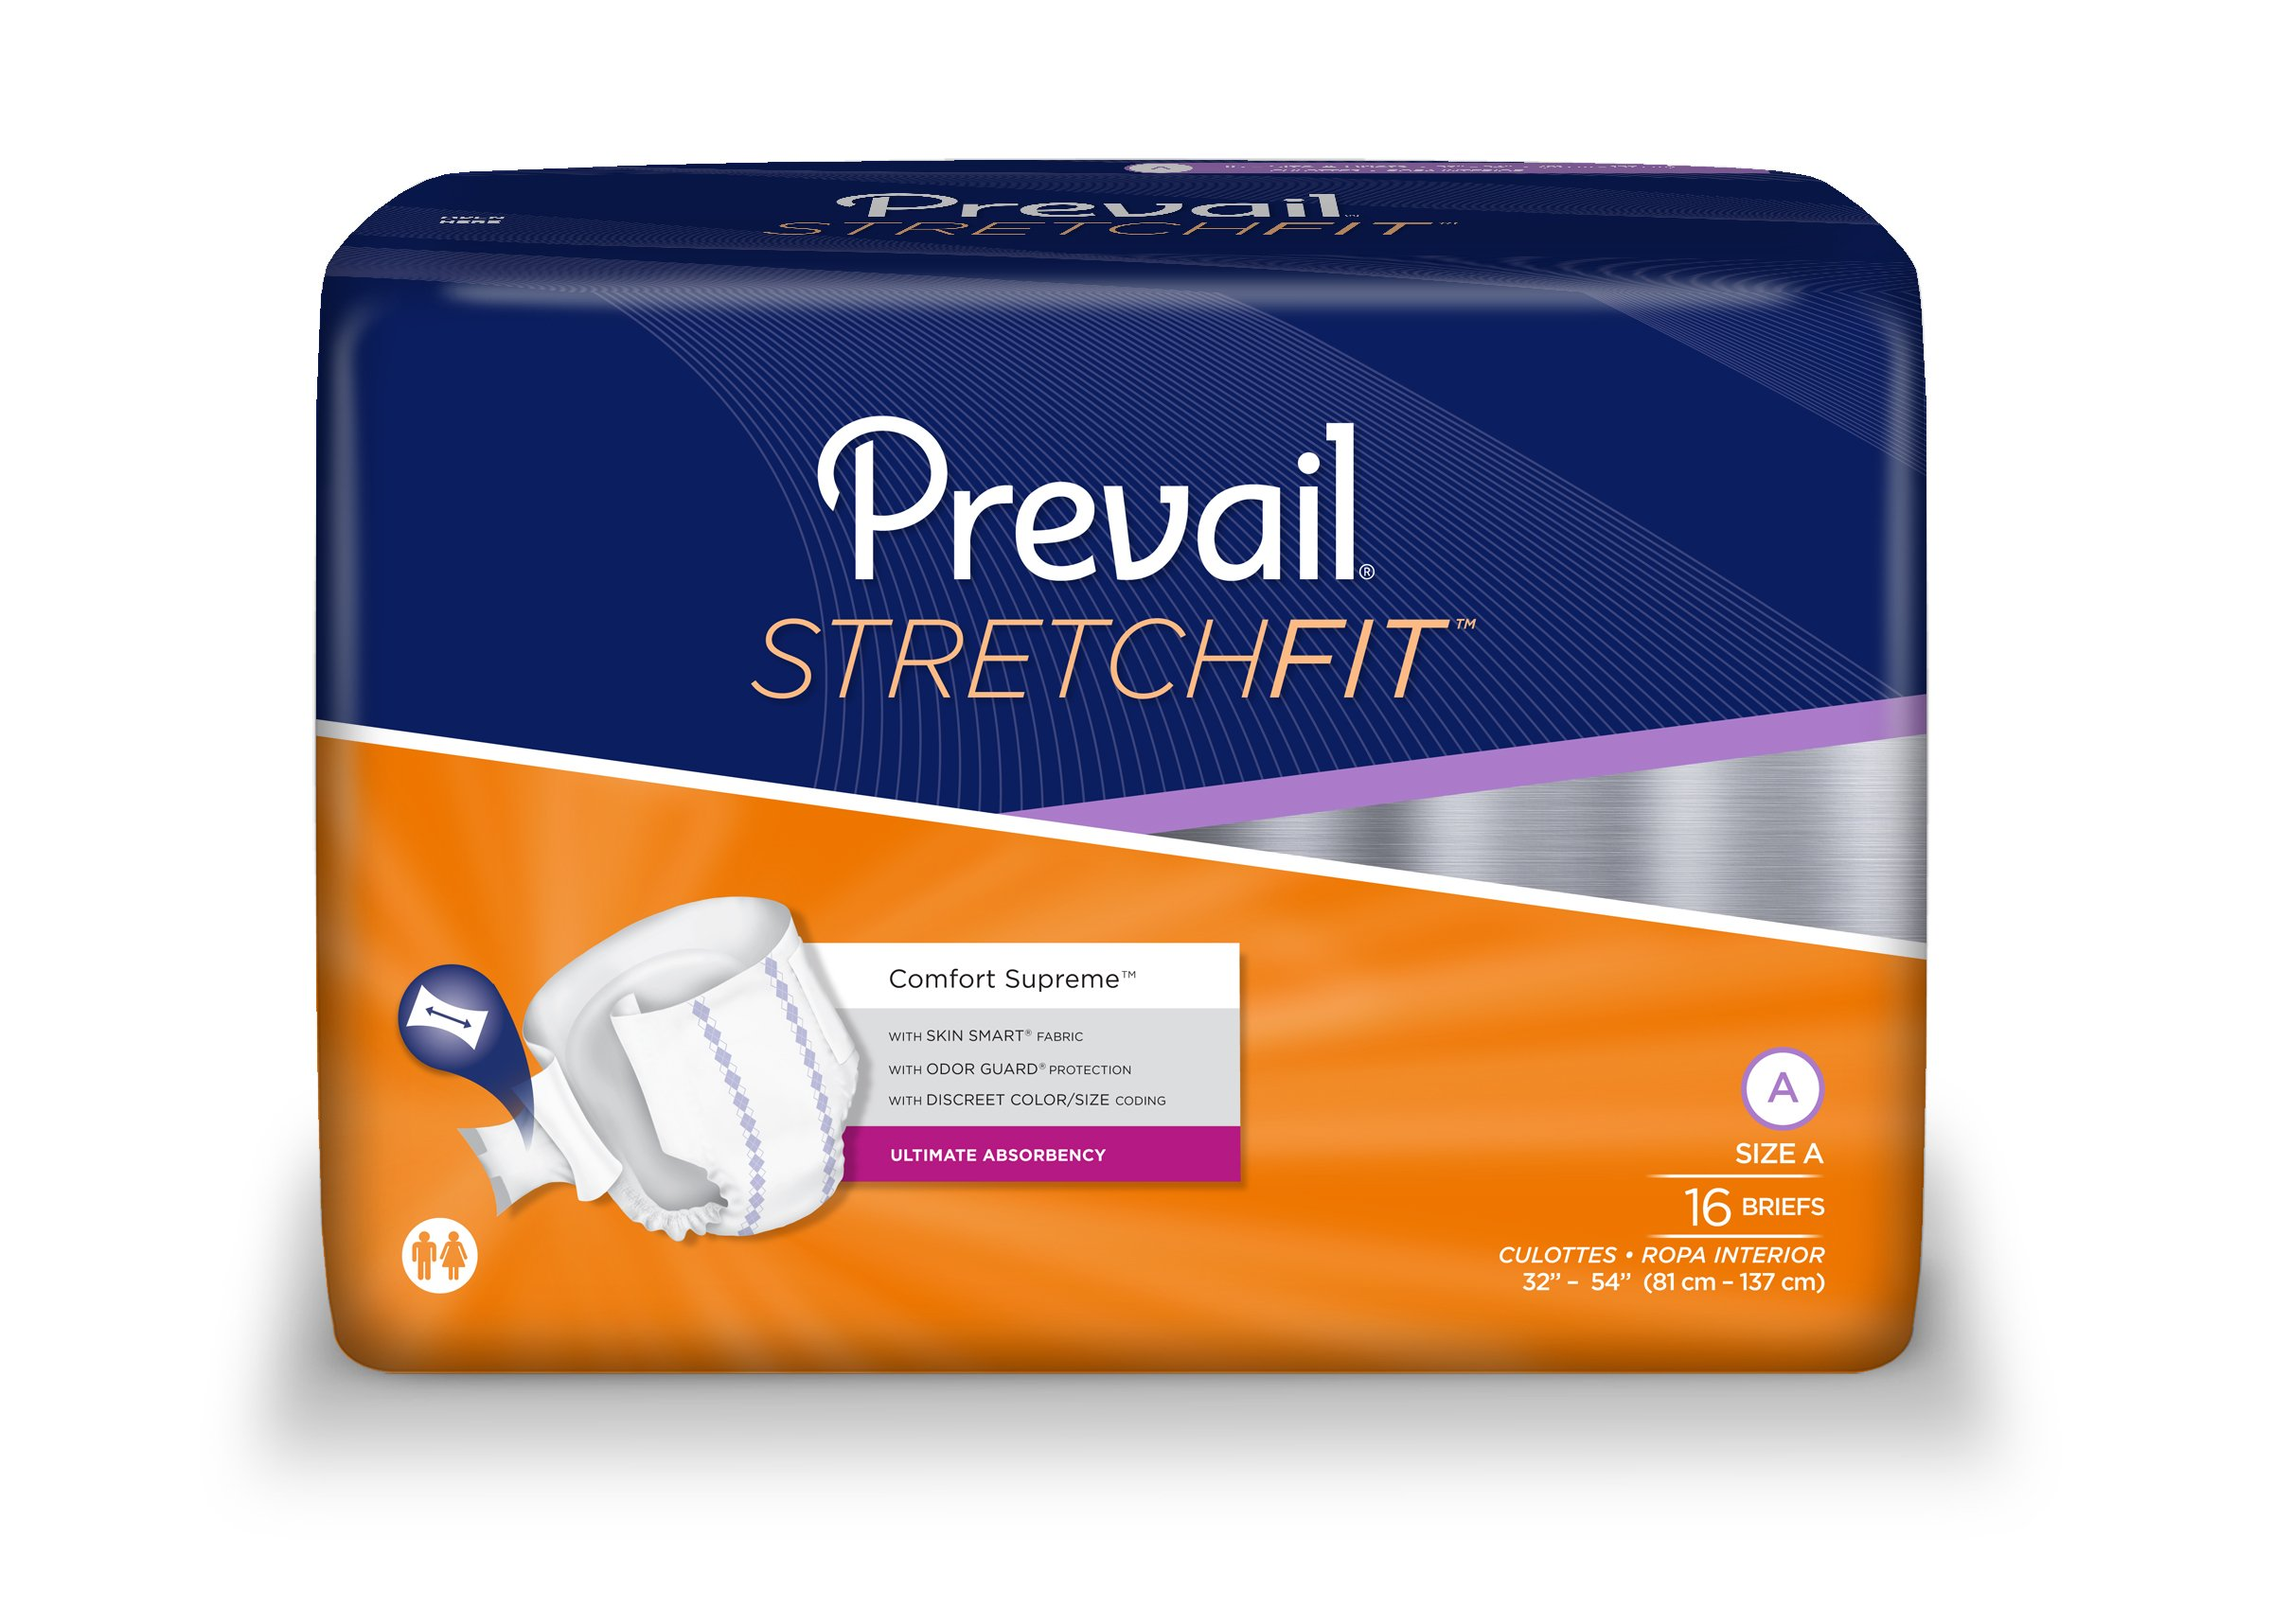 Amazon.com: Prevail® Stretchfit™ Brief, Size A, Case of 96: Health & Personal Care